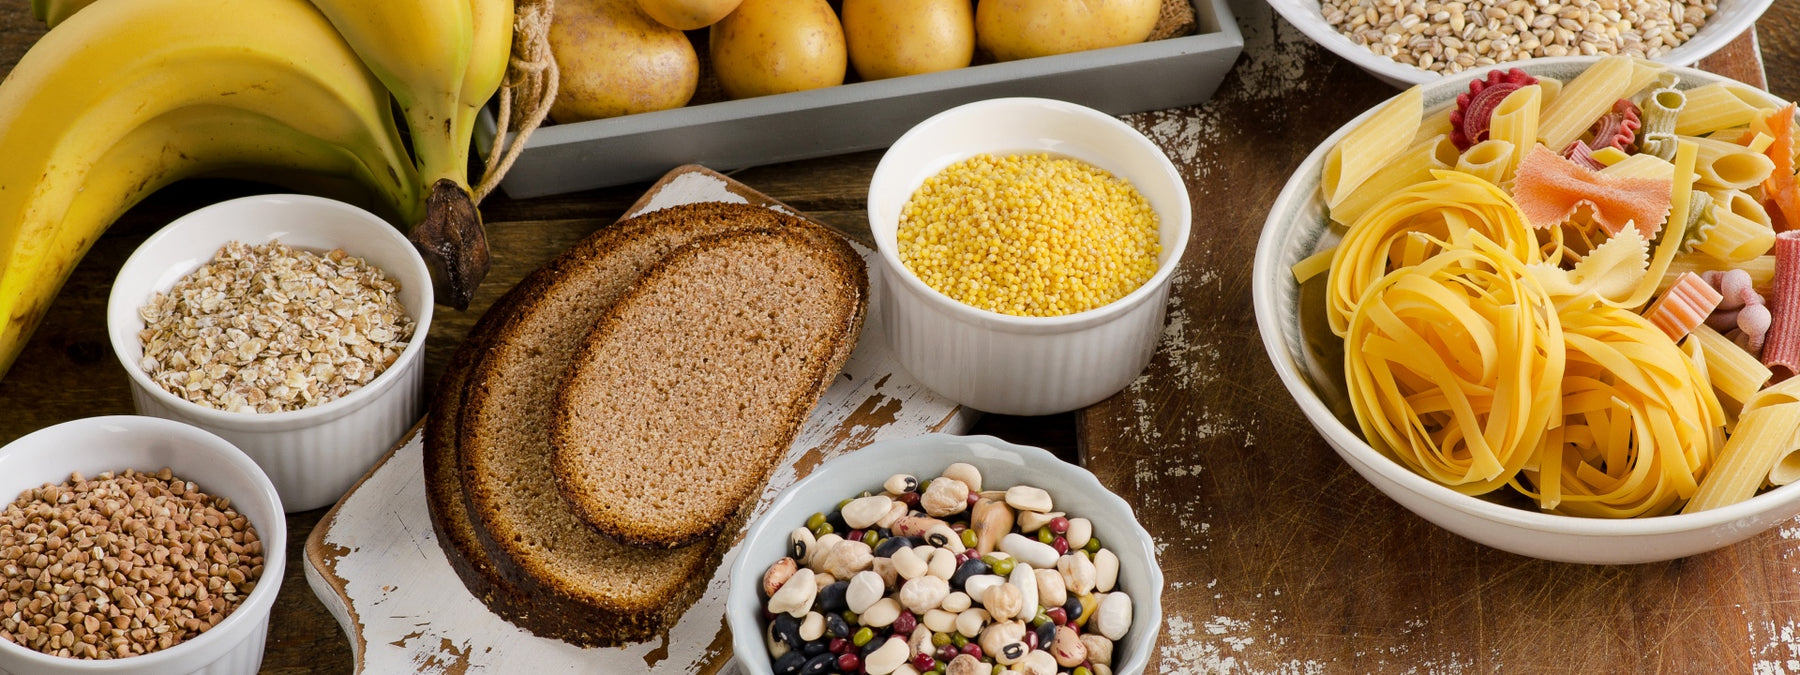 4 Myths About High Carbohydrate Foods That Need to be Buried